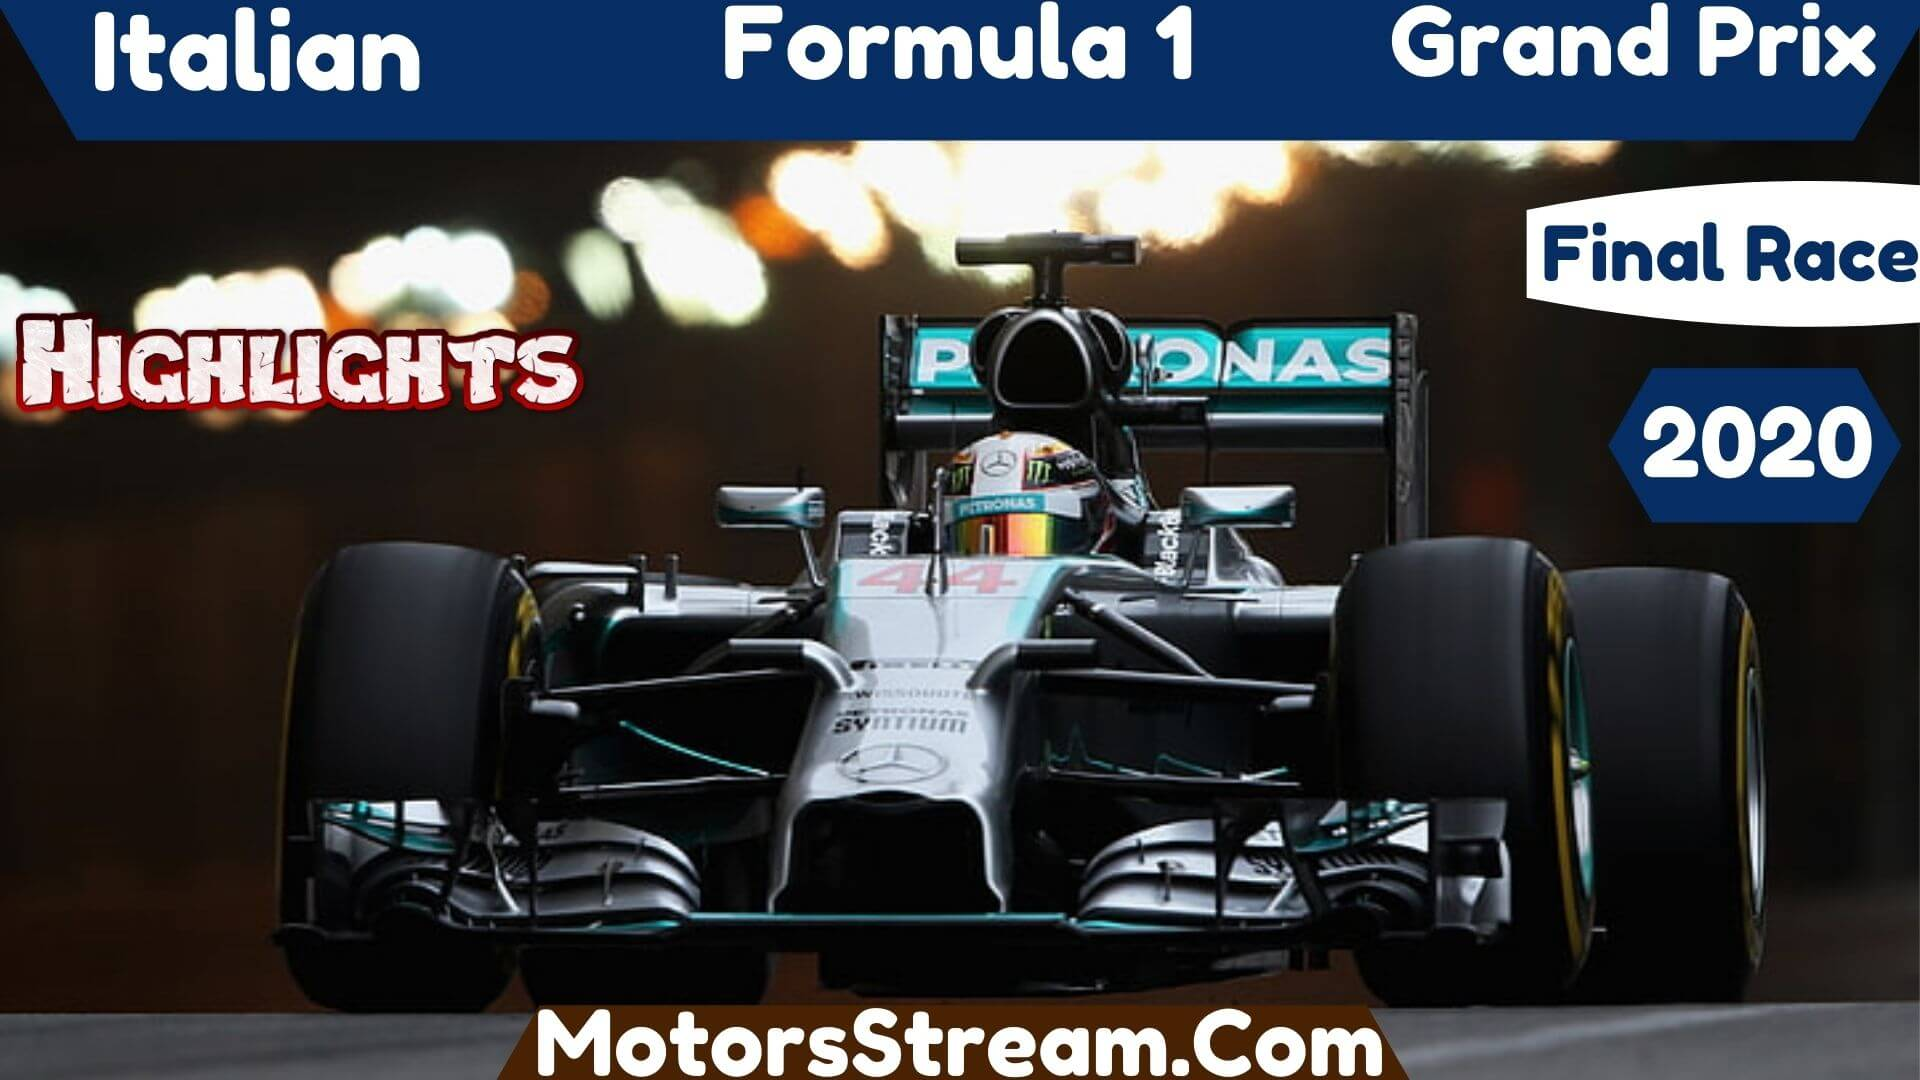 Italian Grand Prix Final Race Highlights 2020 Formula 1